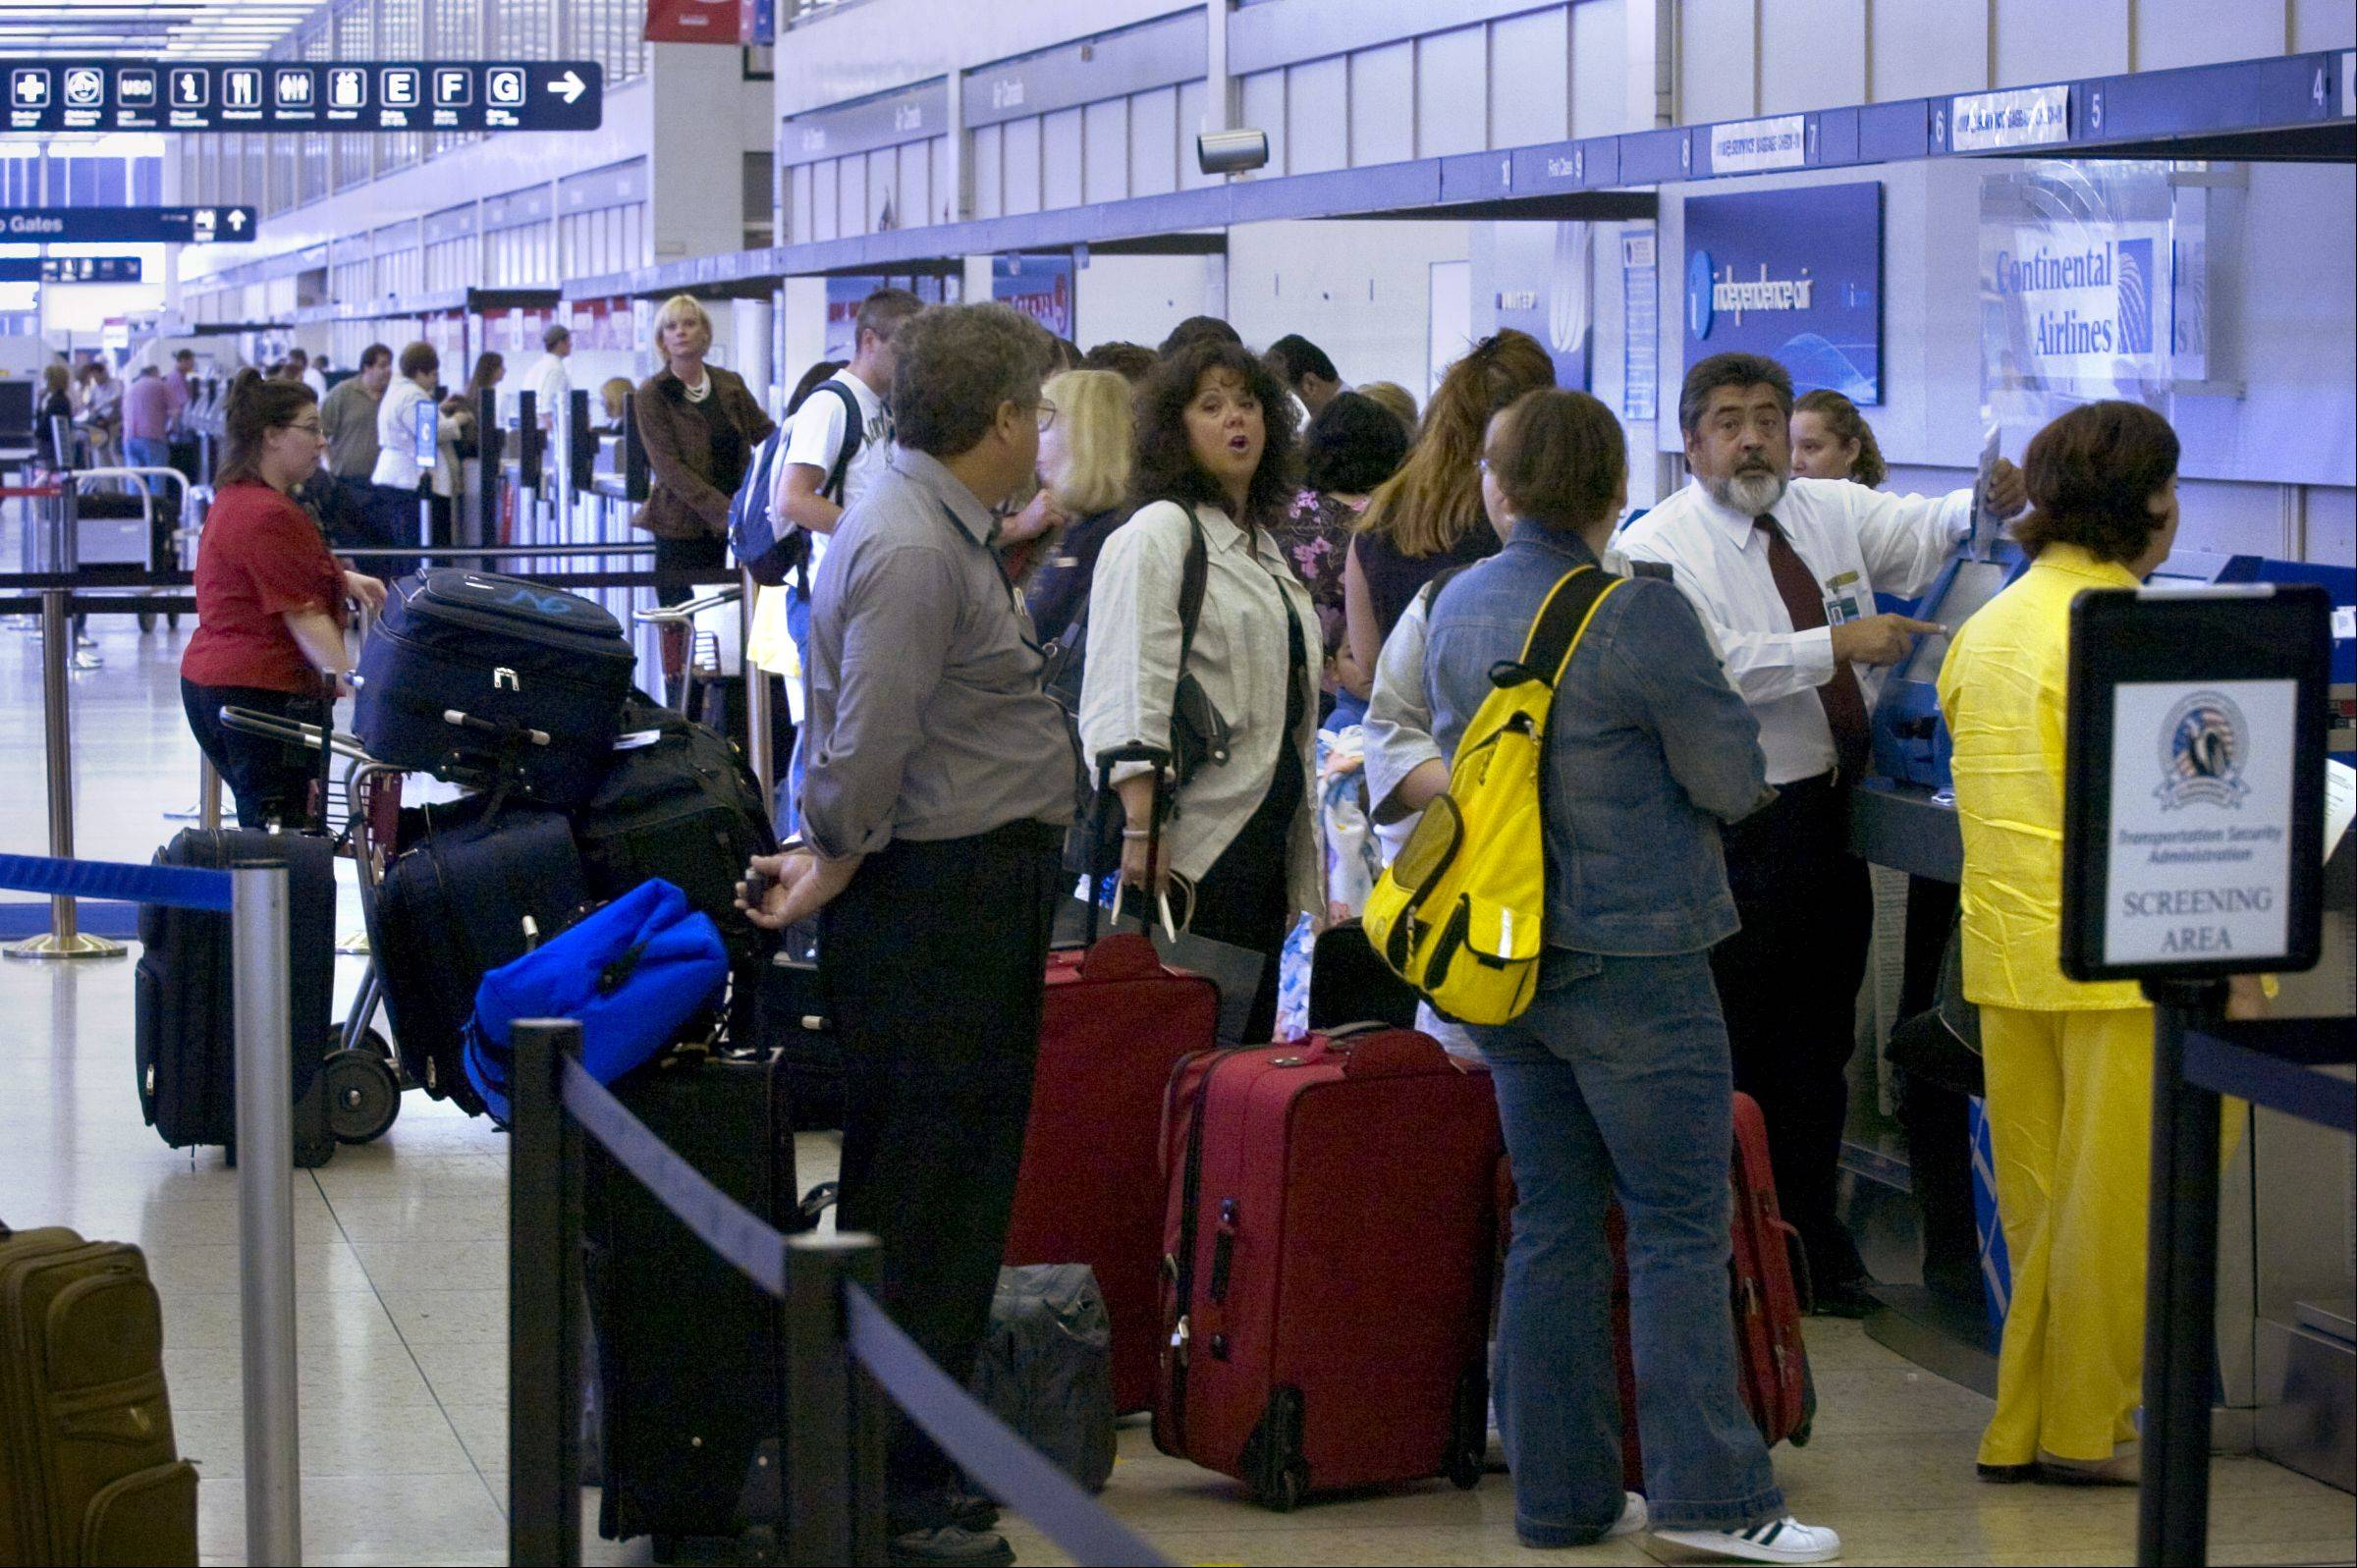 Things are going to get really busy at Chicago's O'Hare International Airport this weekend.The city's Department of Aviation says that the 269,000 passengers expected at O'Hare on Friday will make it the busiest day of the Memorial Day weekend.